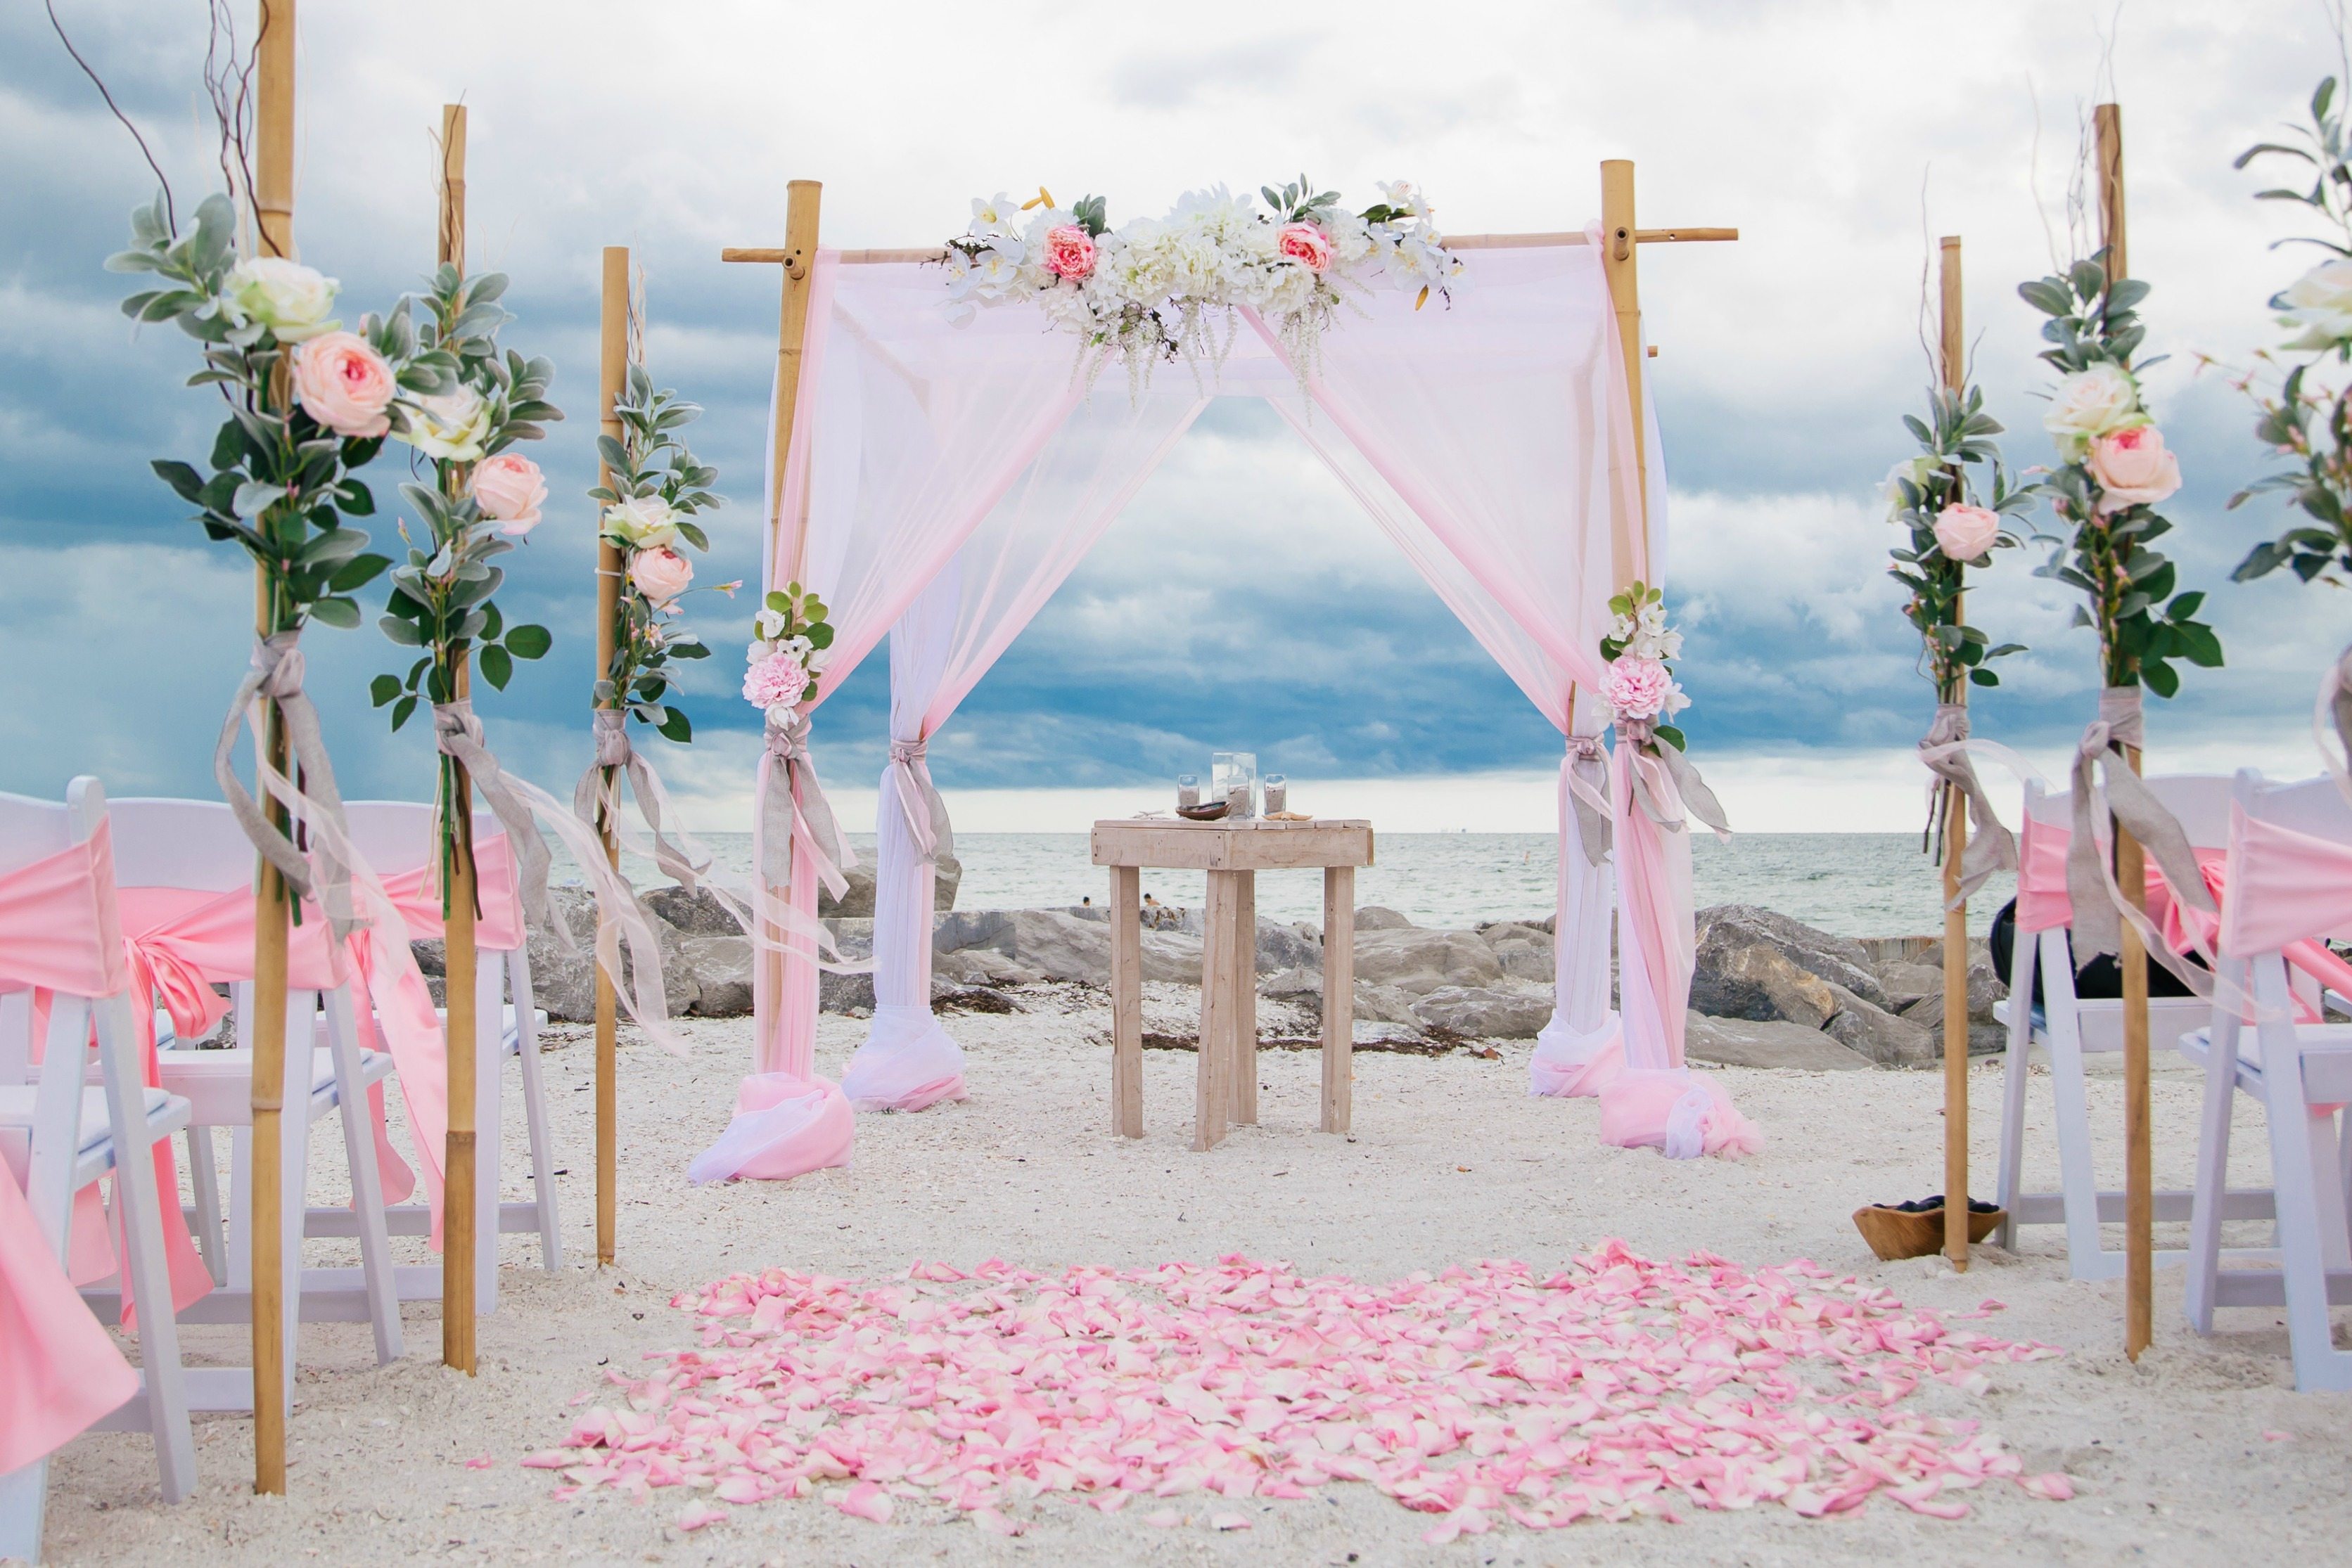 3 Frugal Benefits Of Having A Beach Wedding This Summer